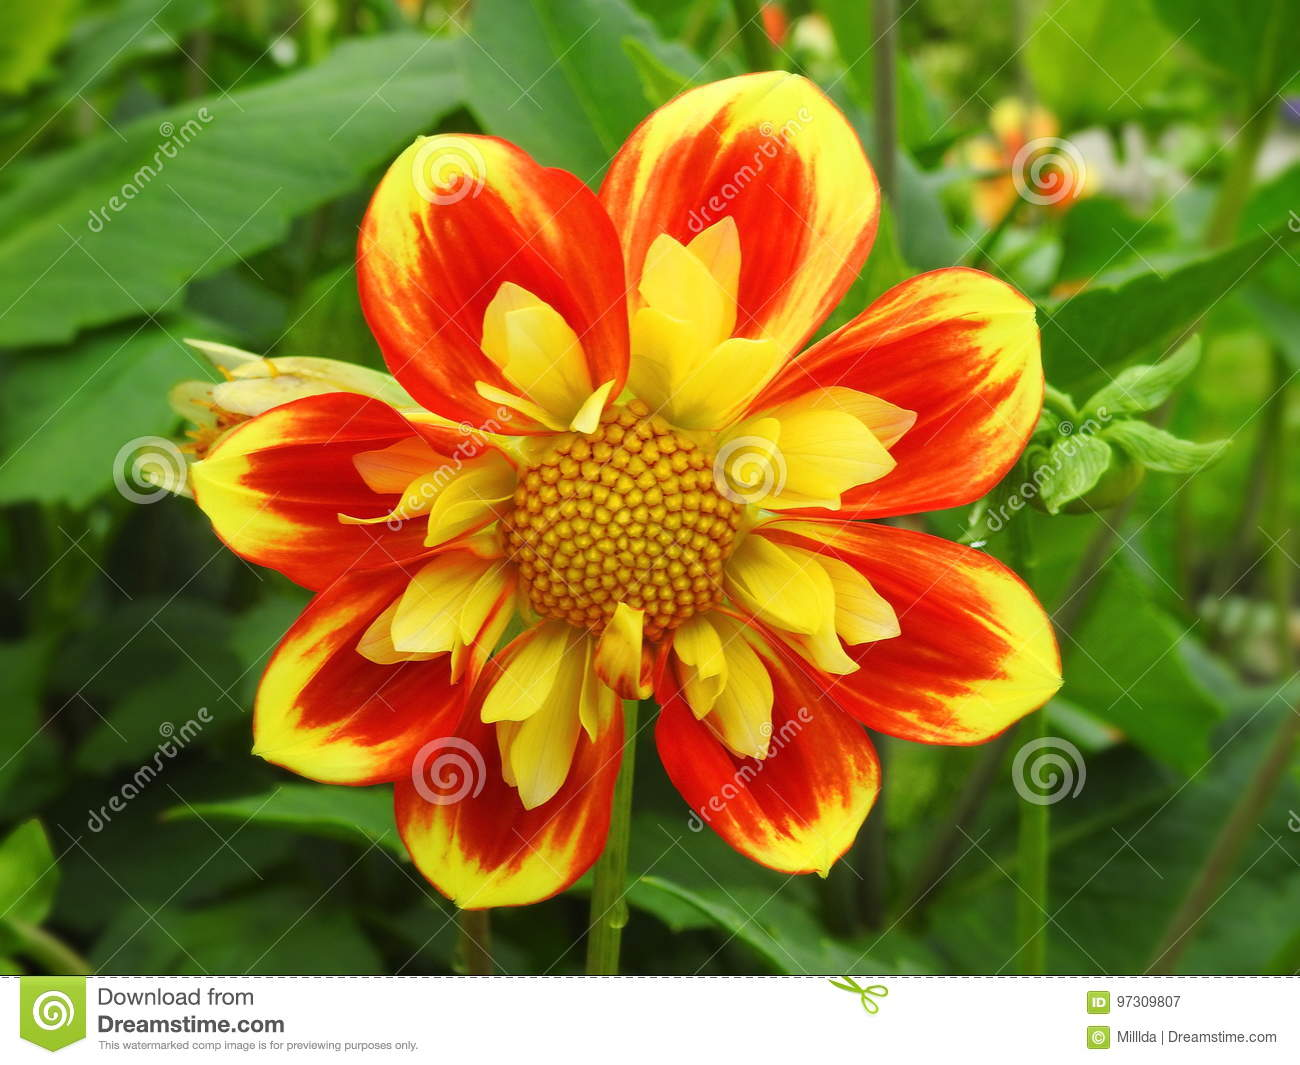 Colorful Dahlia Flower Stock Image Image Of Lithuania 97309807